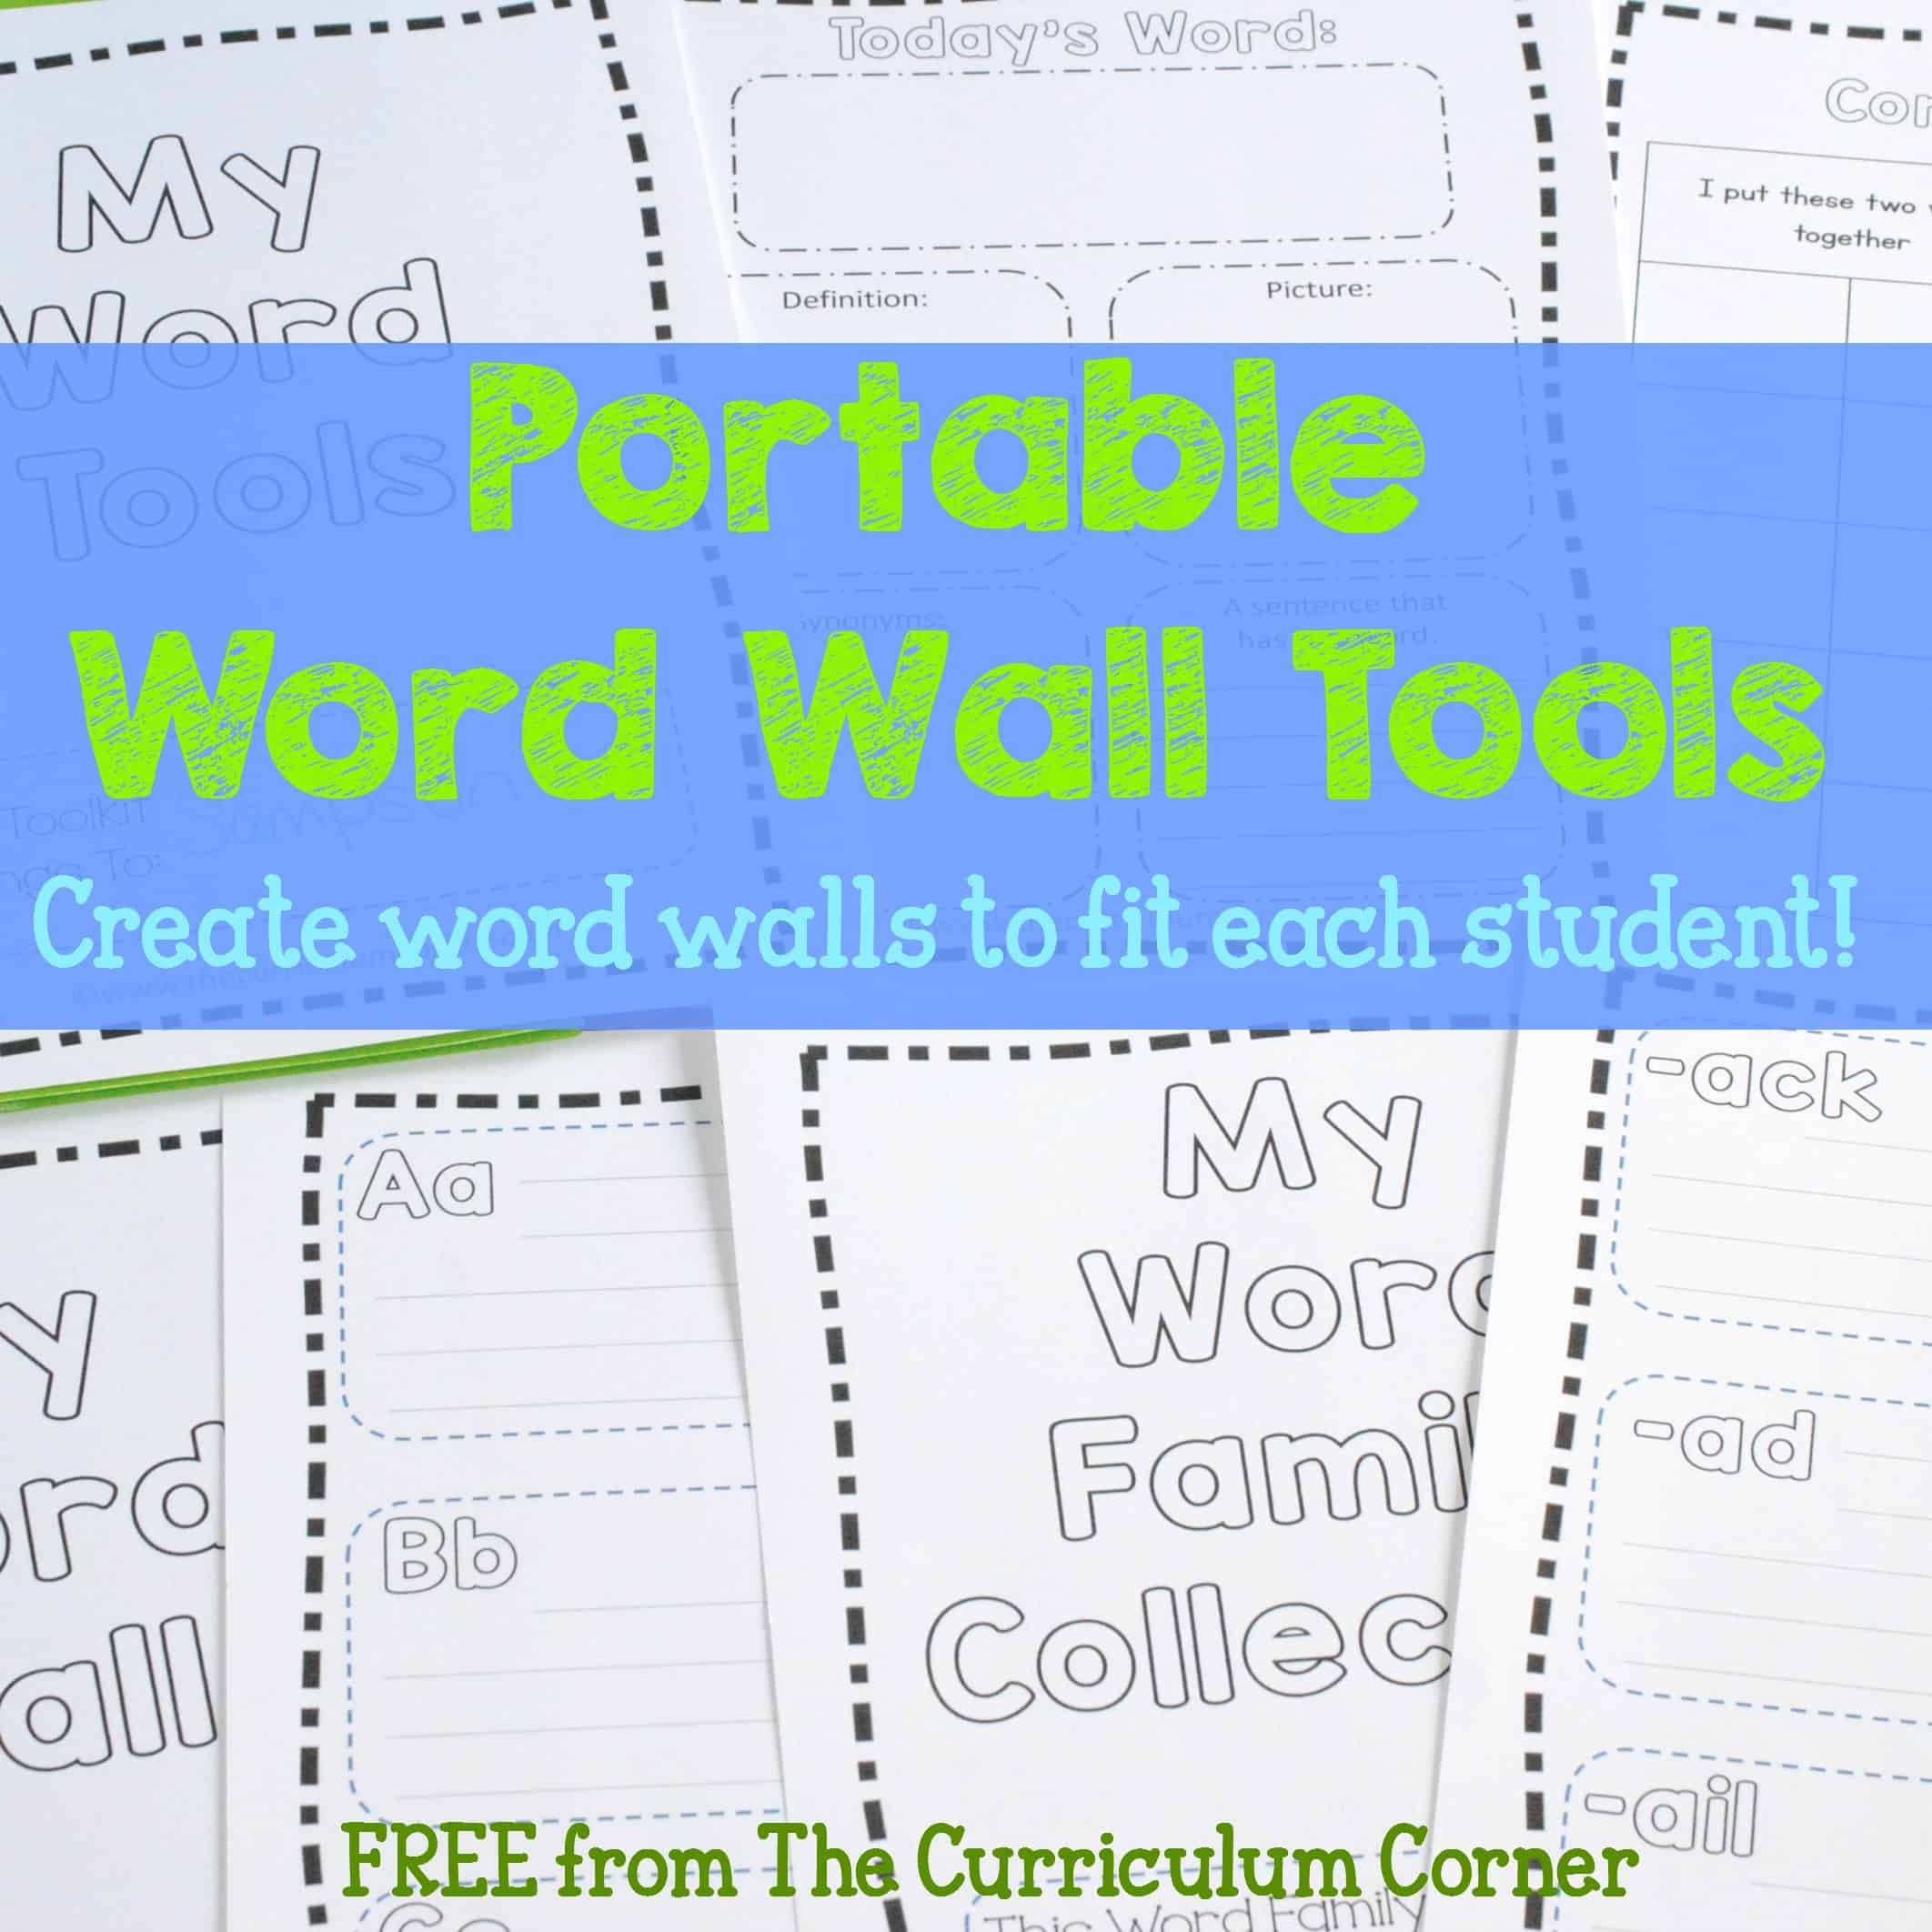 photograph about Word Wall Printable identify Transportable Phrase Wall Resources - The Curriculum Corner 123